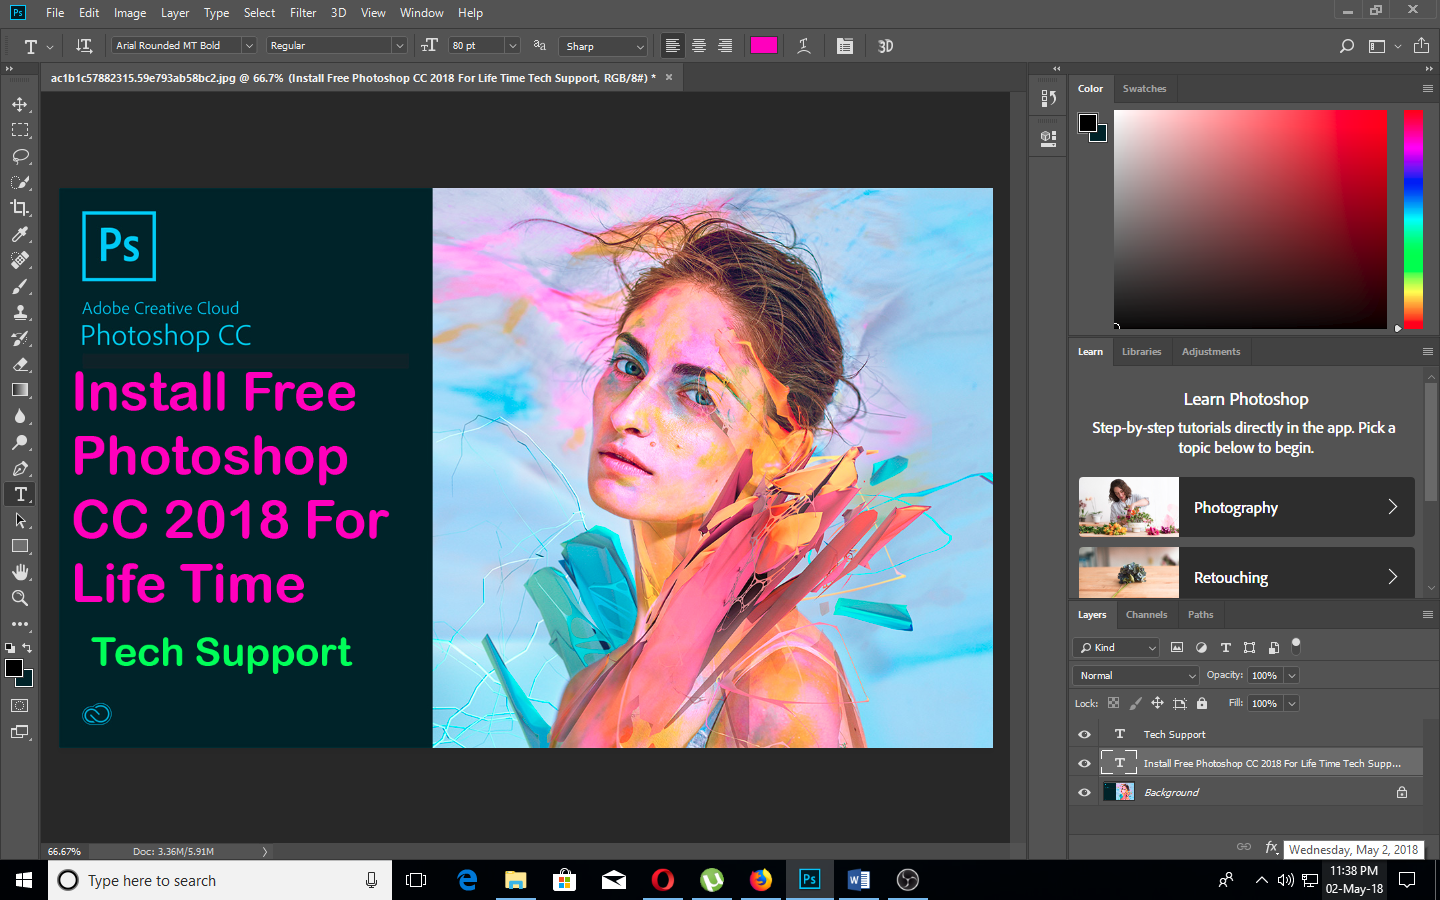 How to Install Photoshop CC 2018 full version for life time